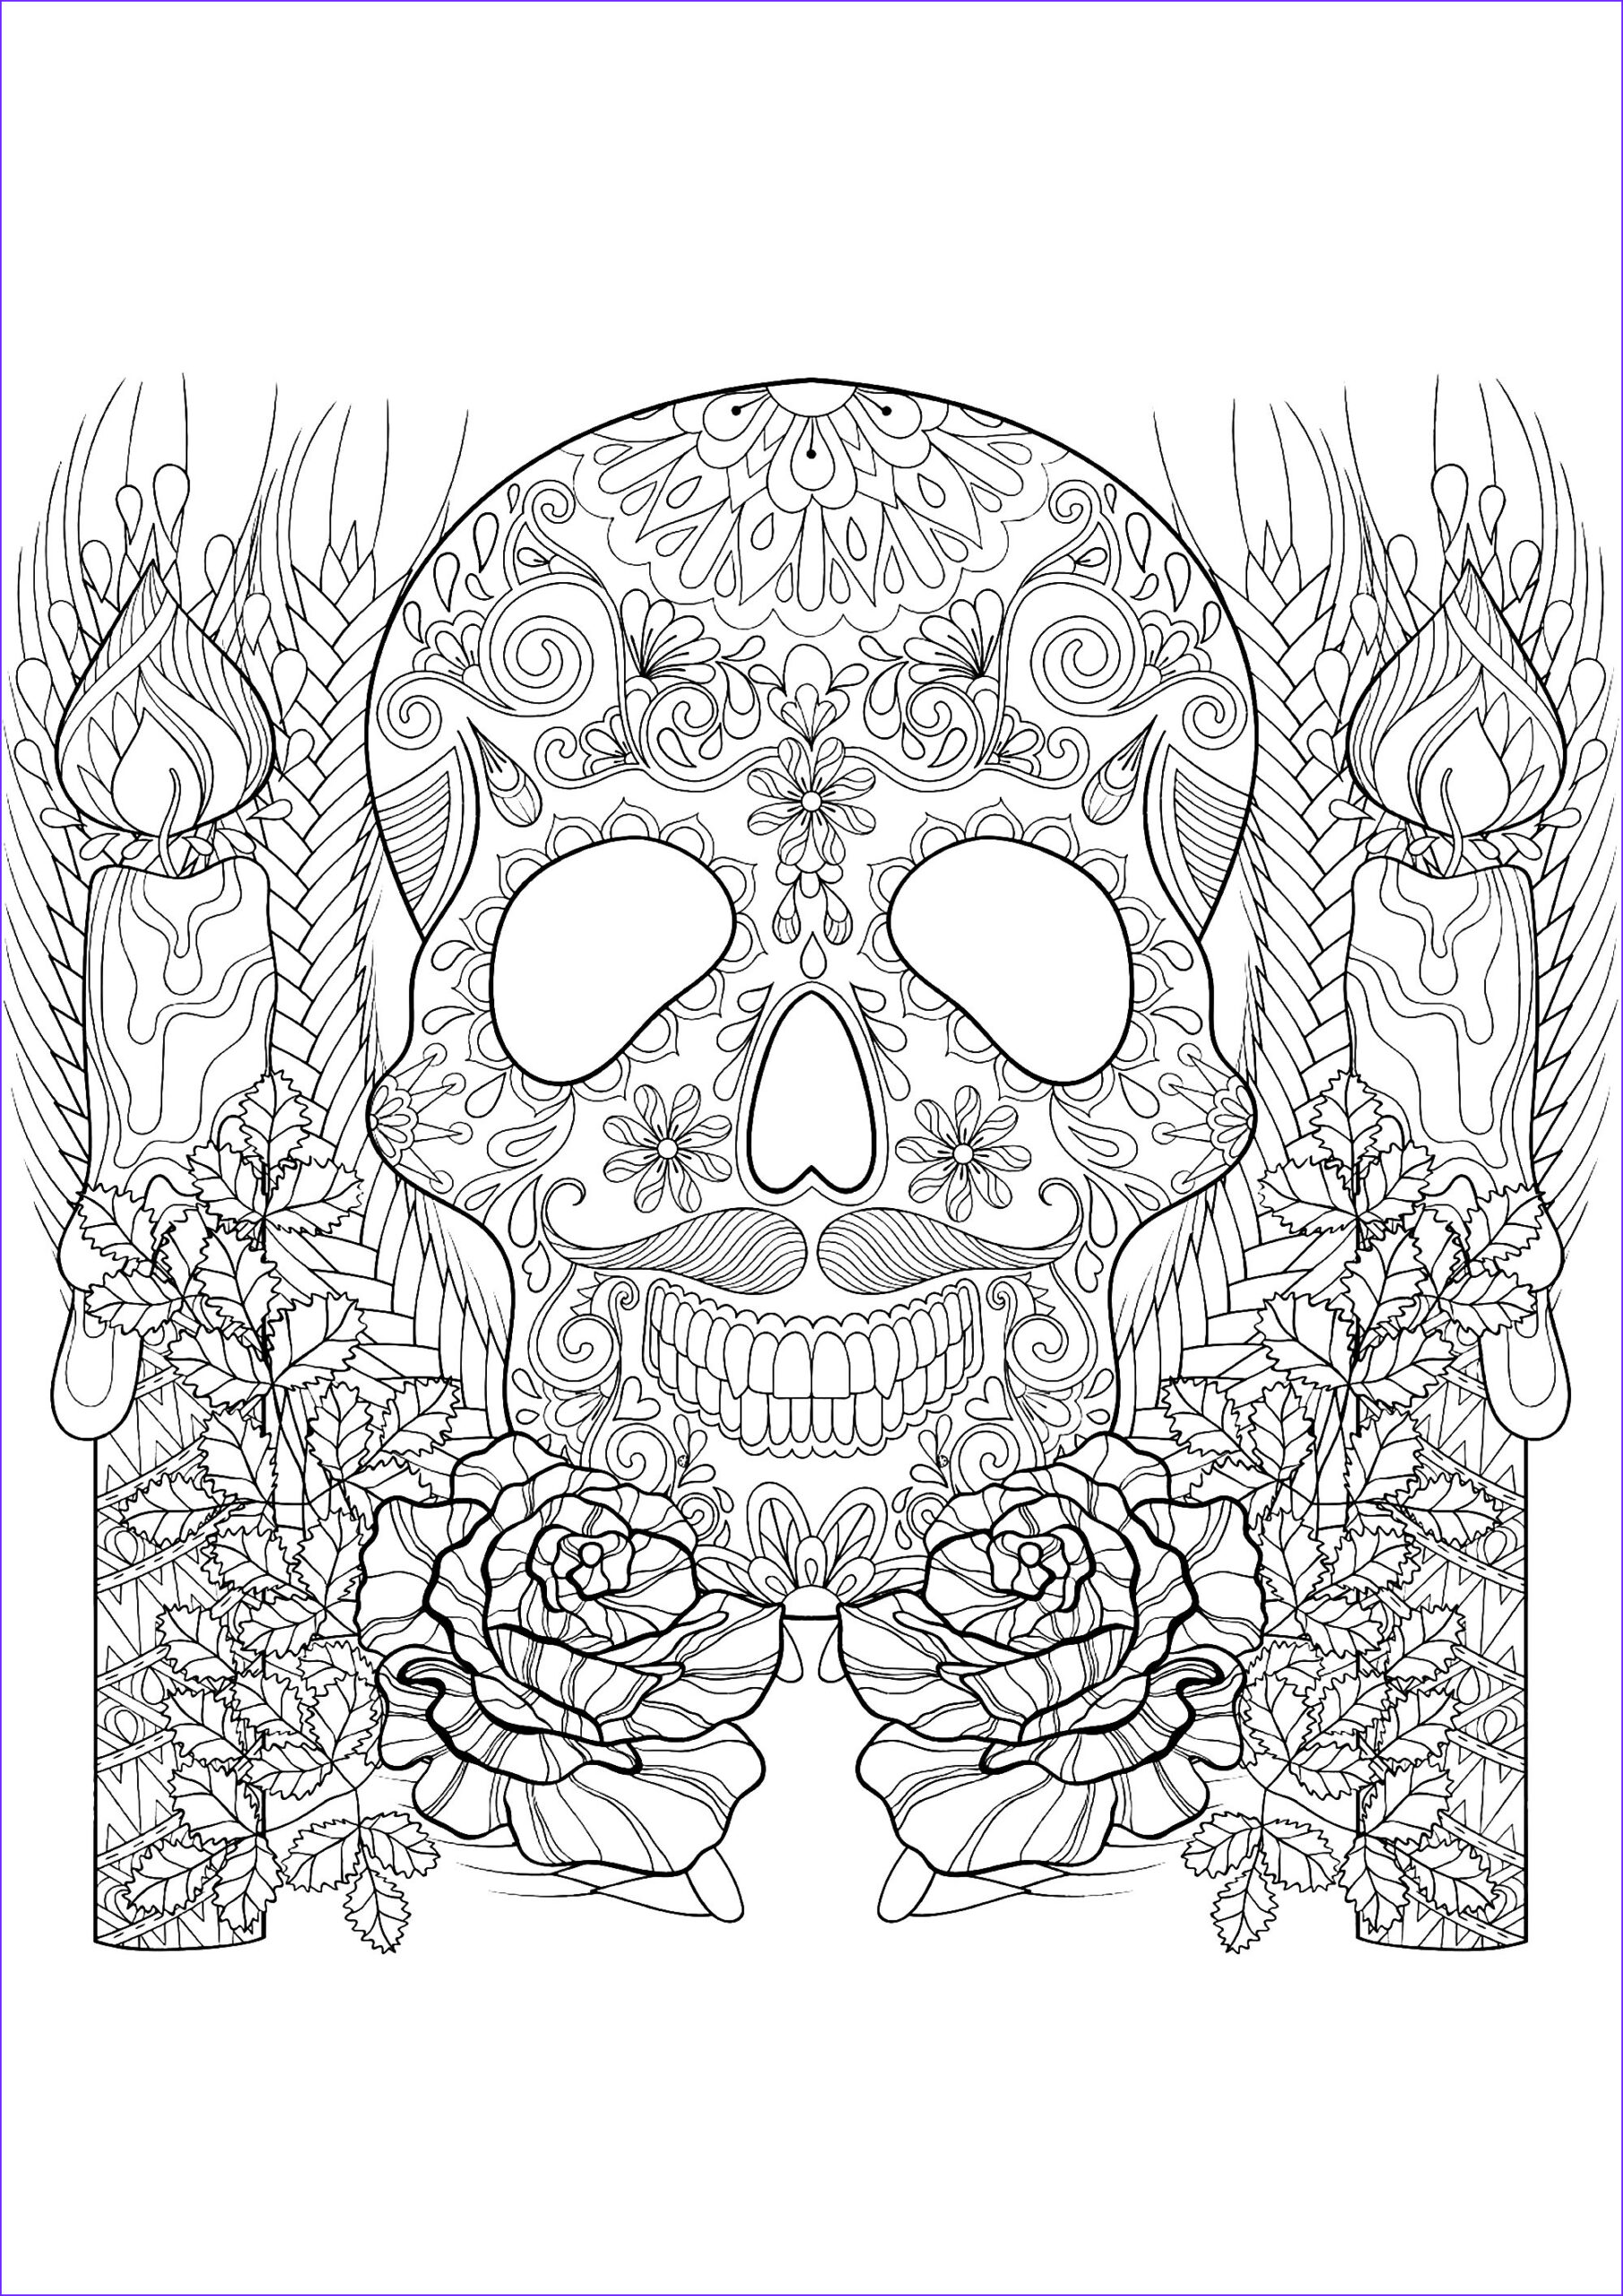 image=events halloween coloring page skull and candles for halloween 1